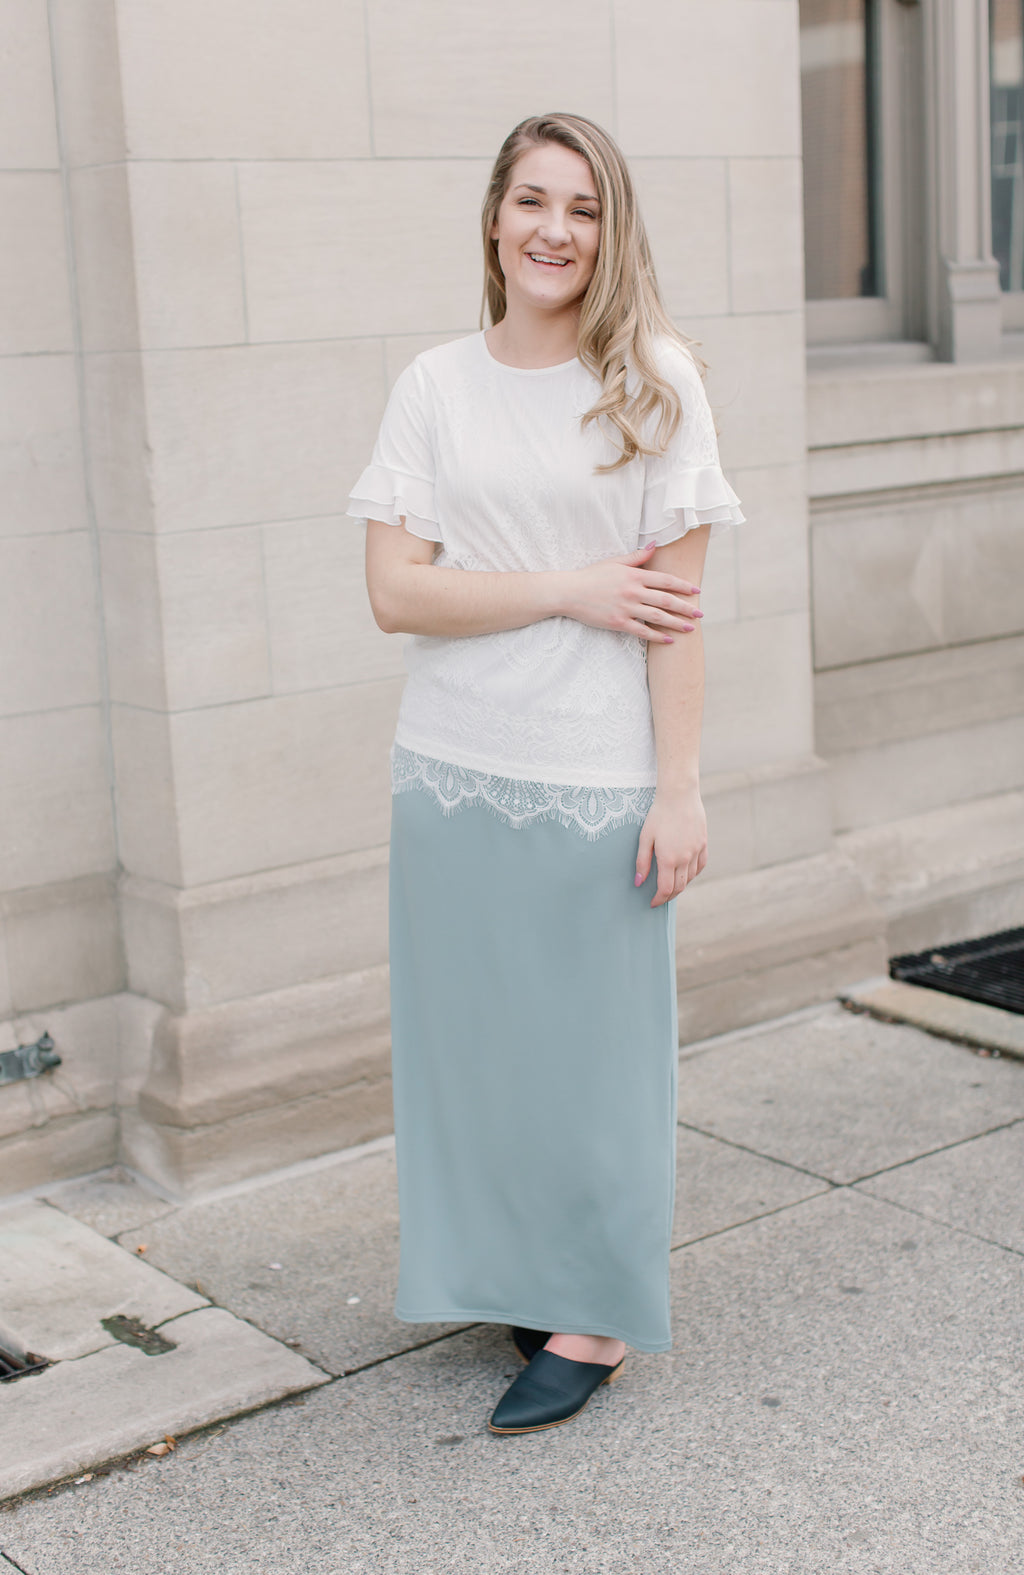 'Claire' Skirt in Seaglass